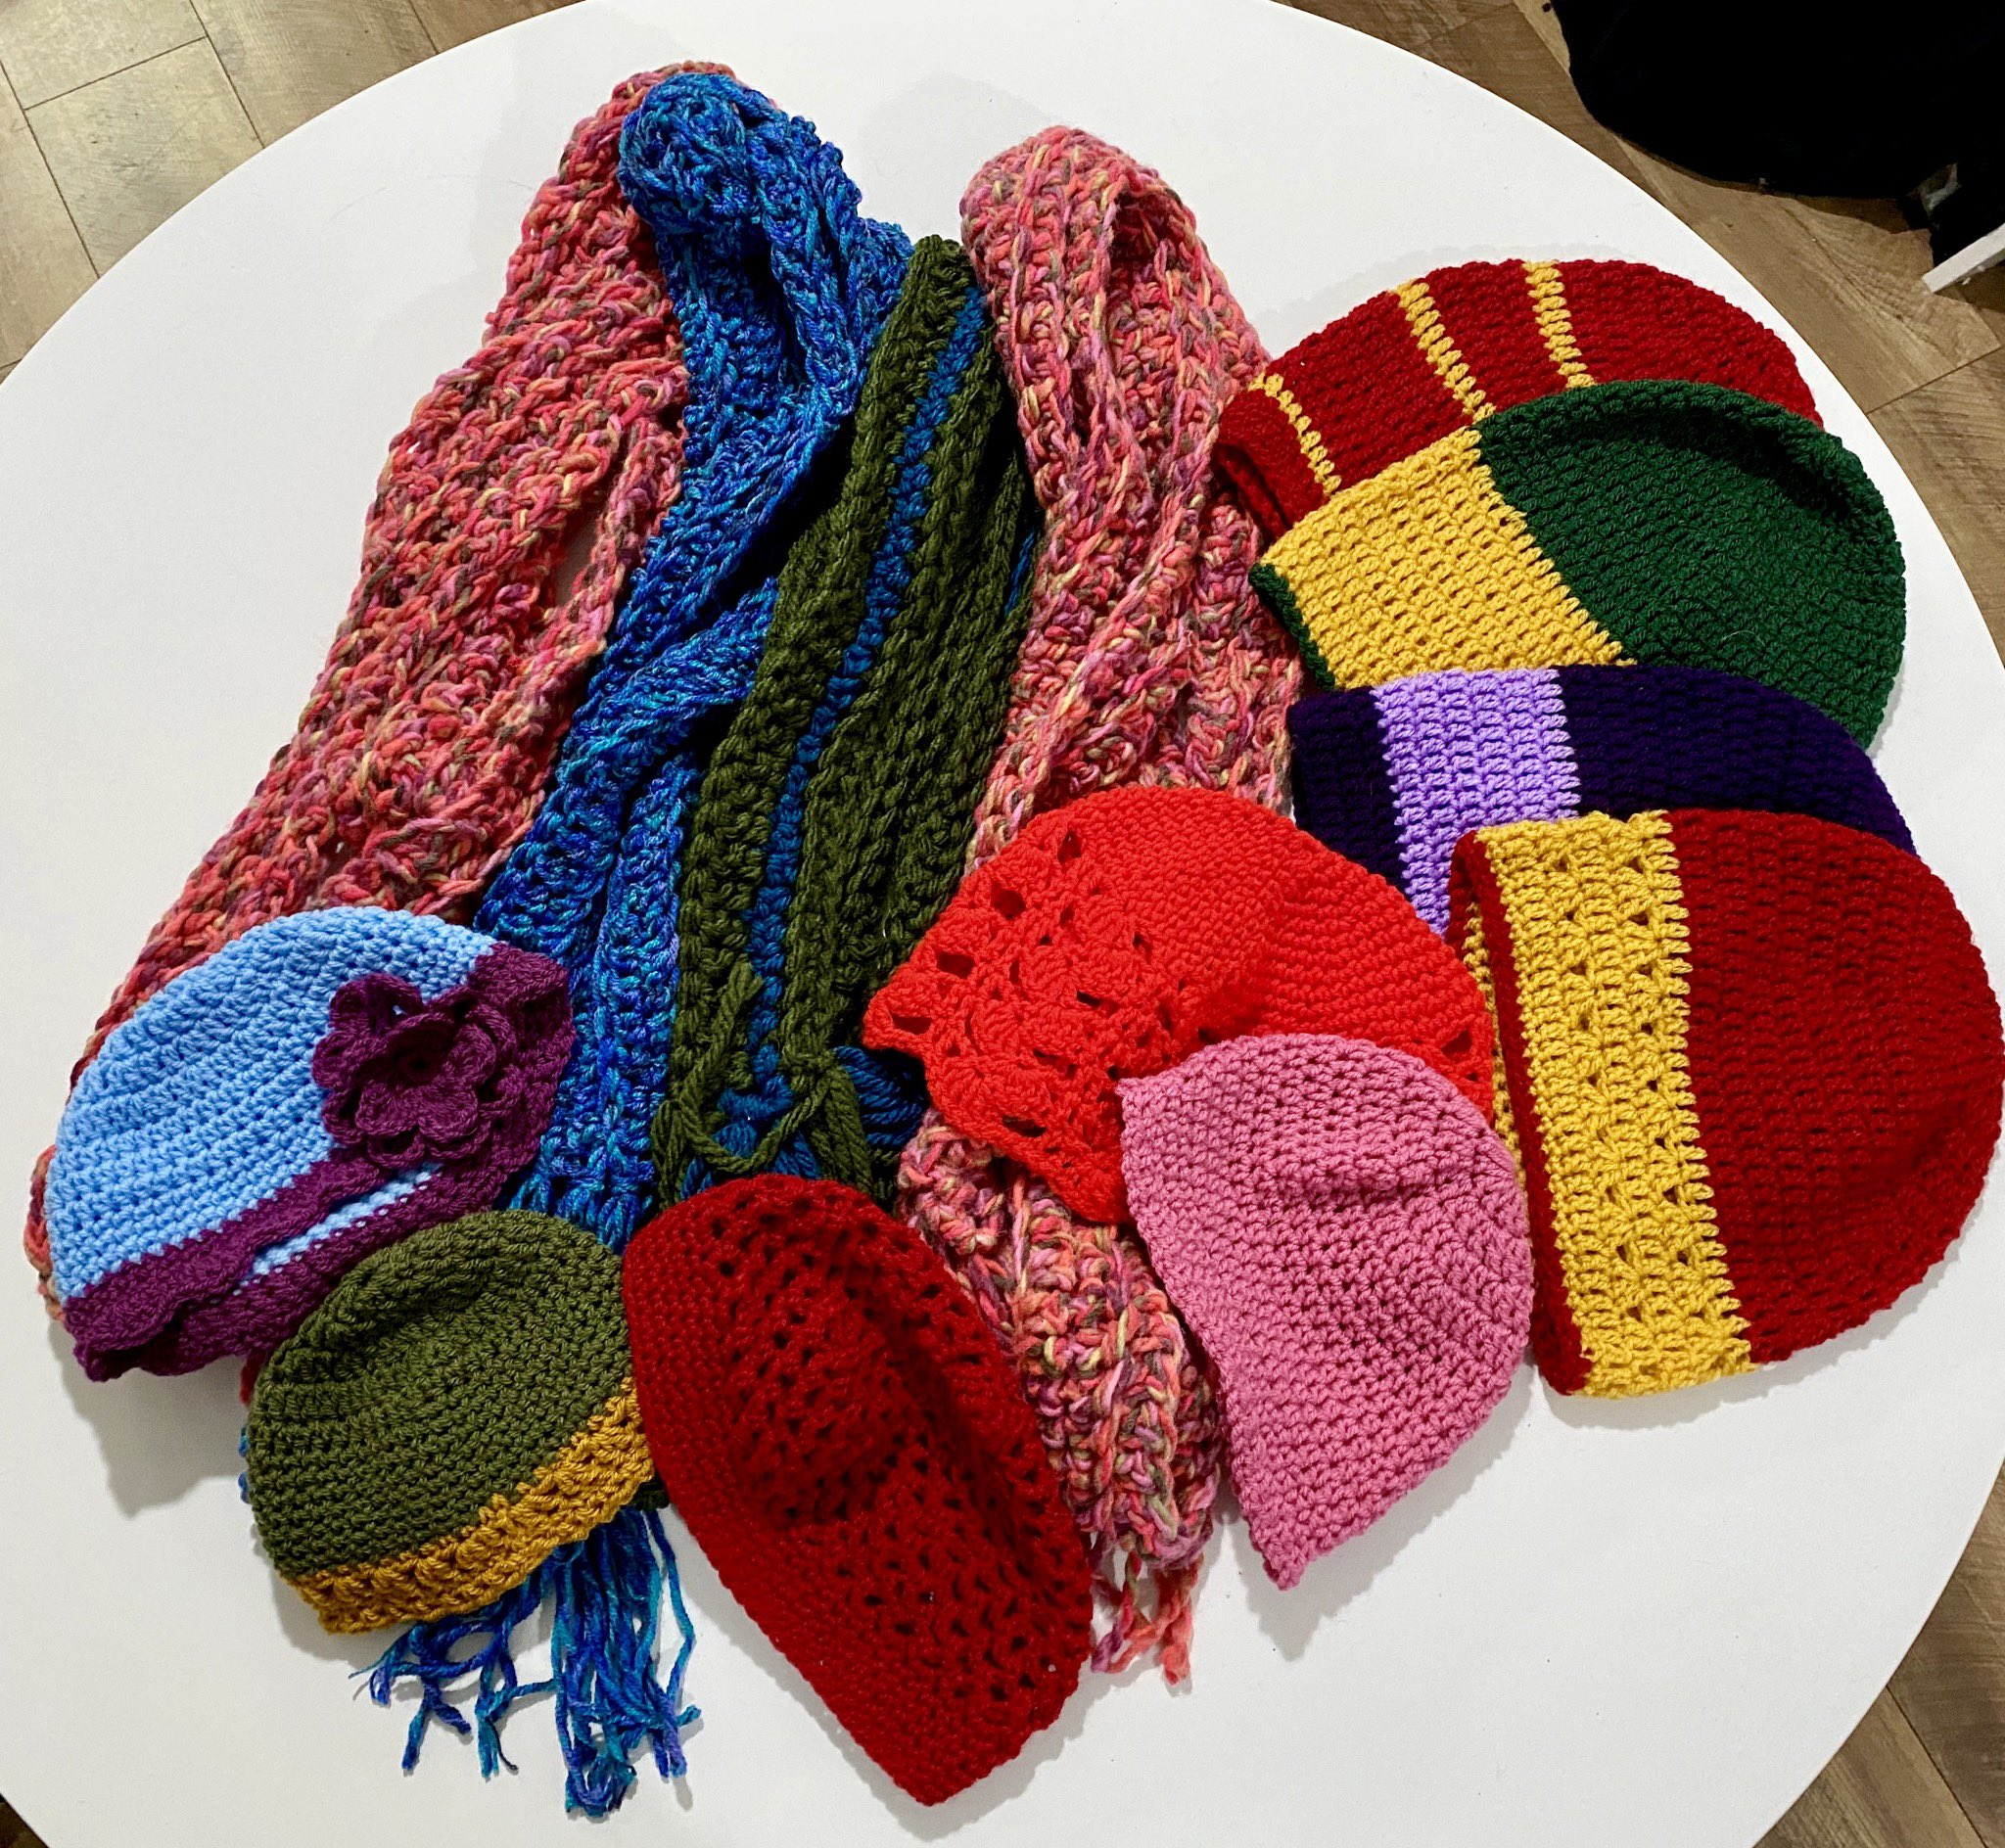 A variety of colourful hats and scarves.